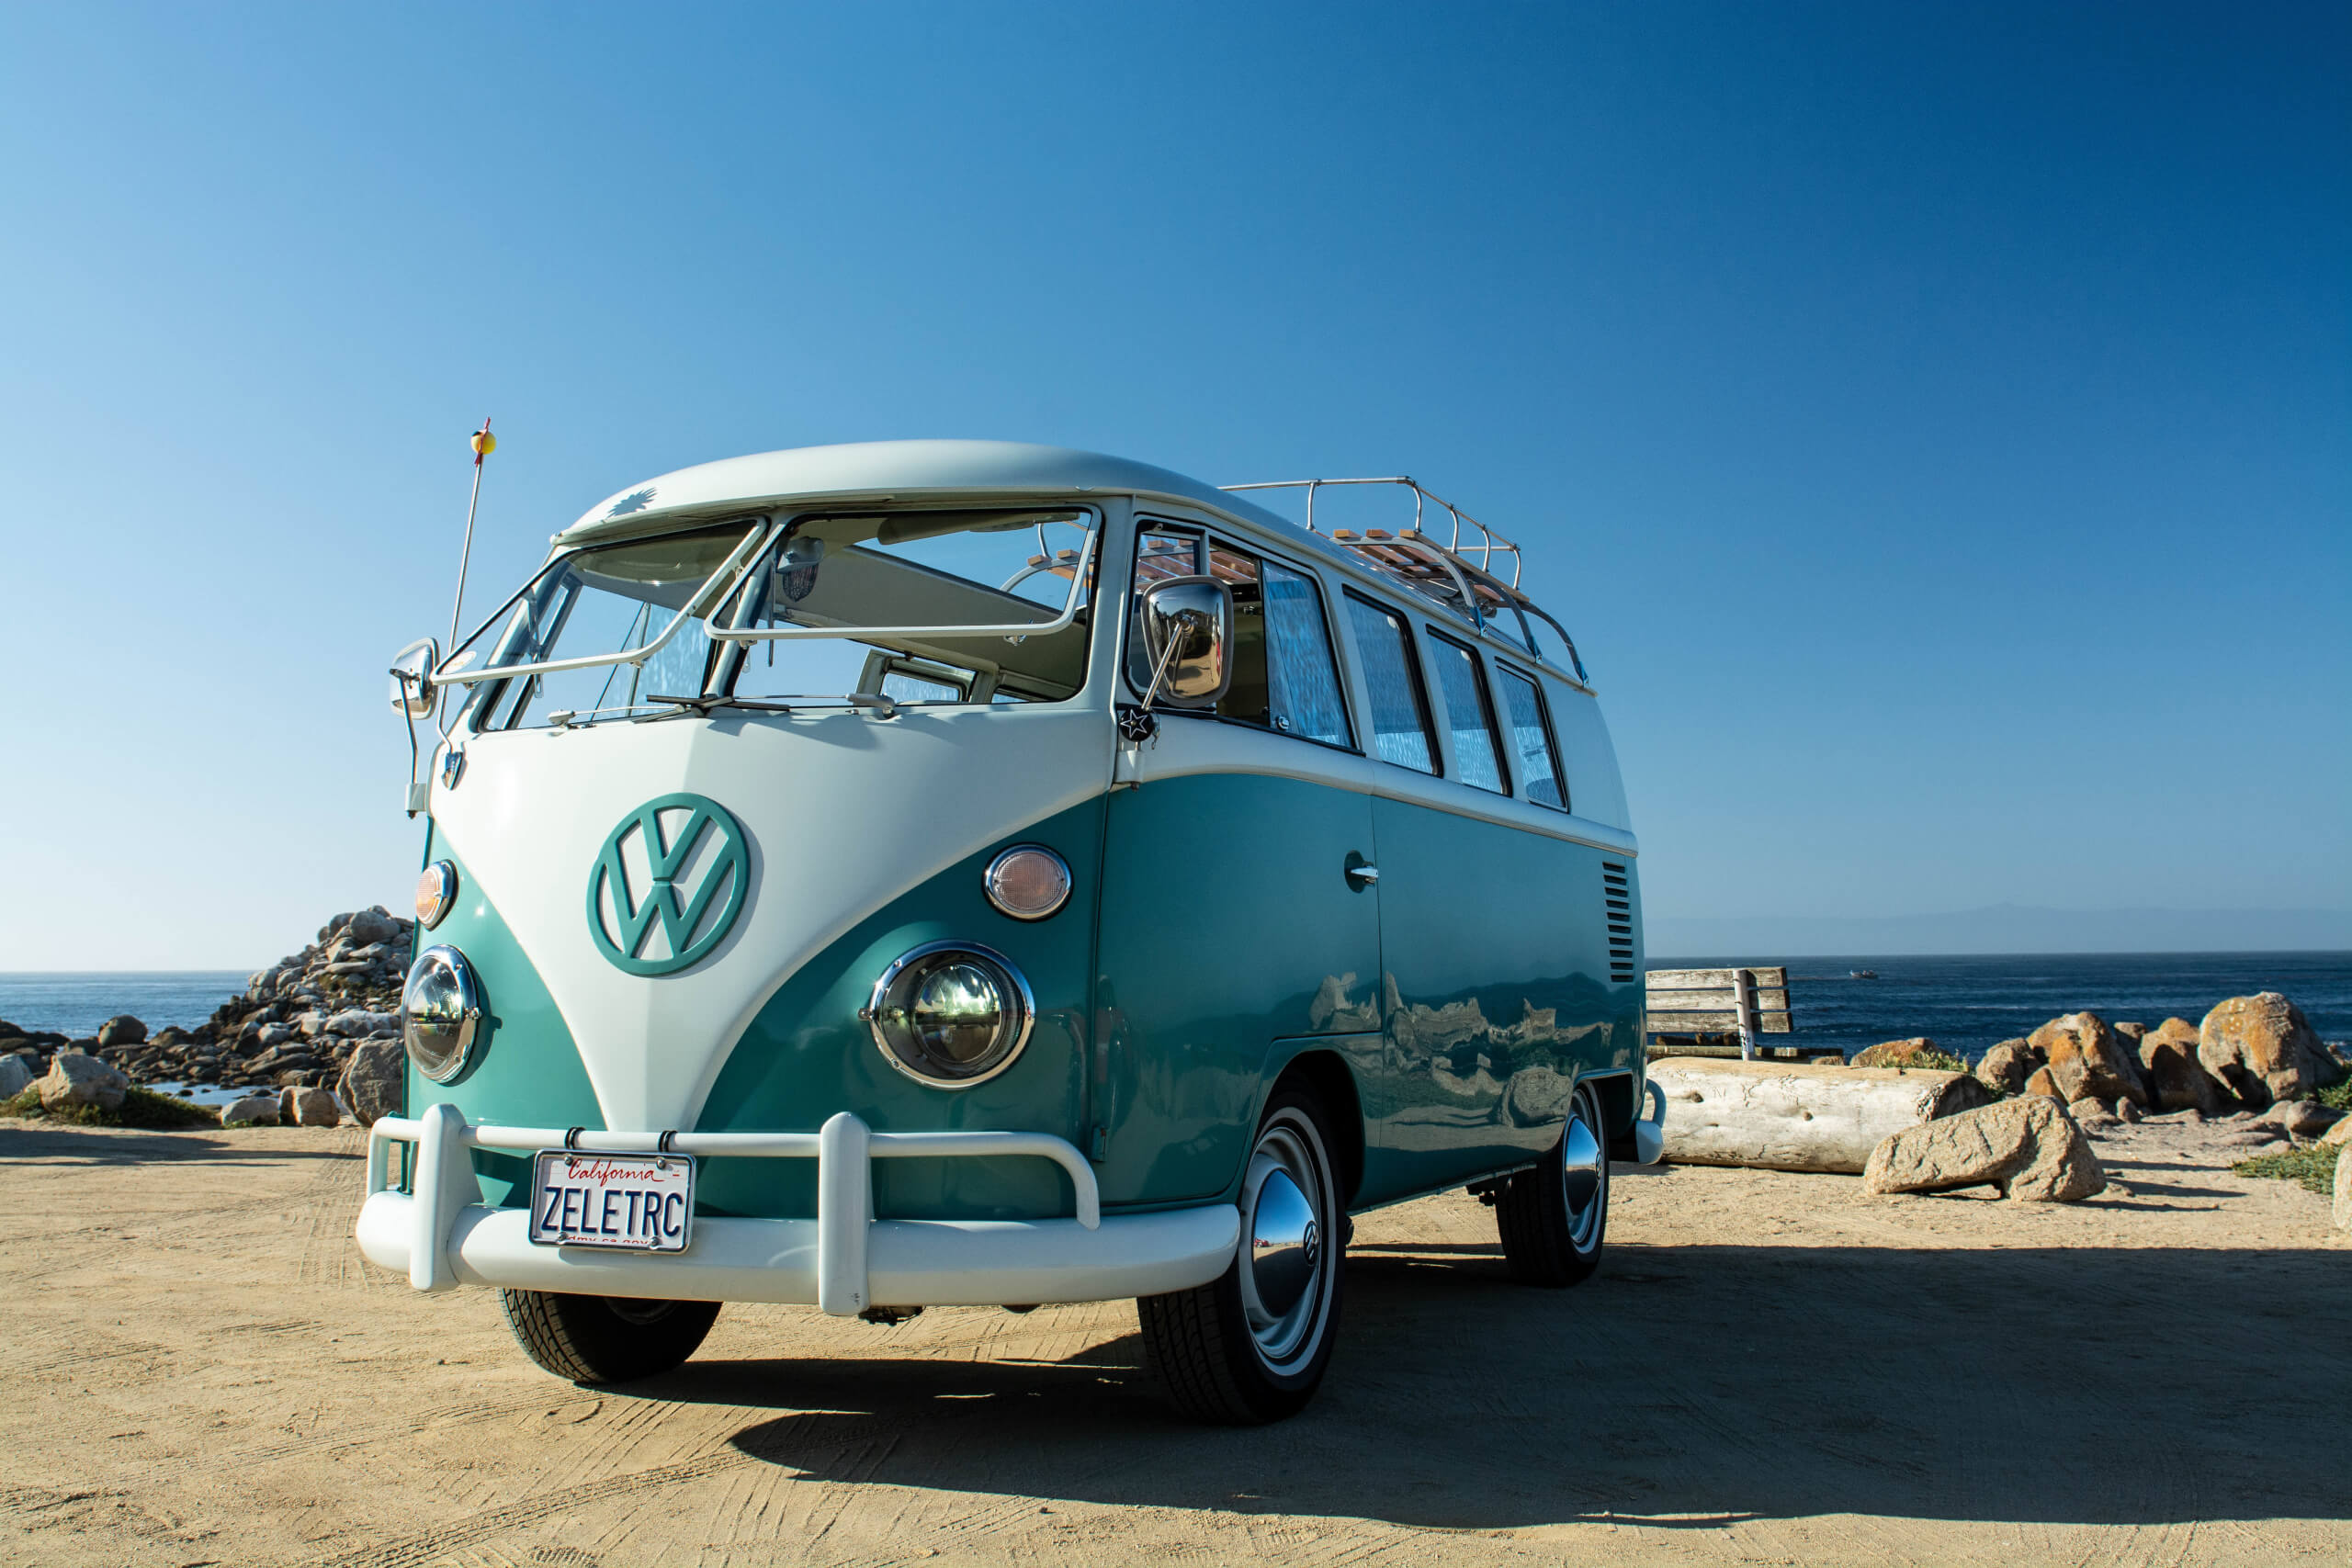 It's Electric! Zelectric's '64 VW Bus Boogies Thousands of Miles